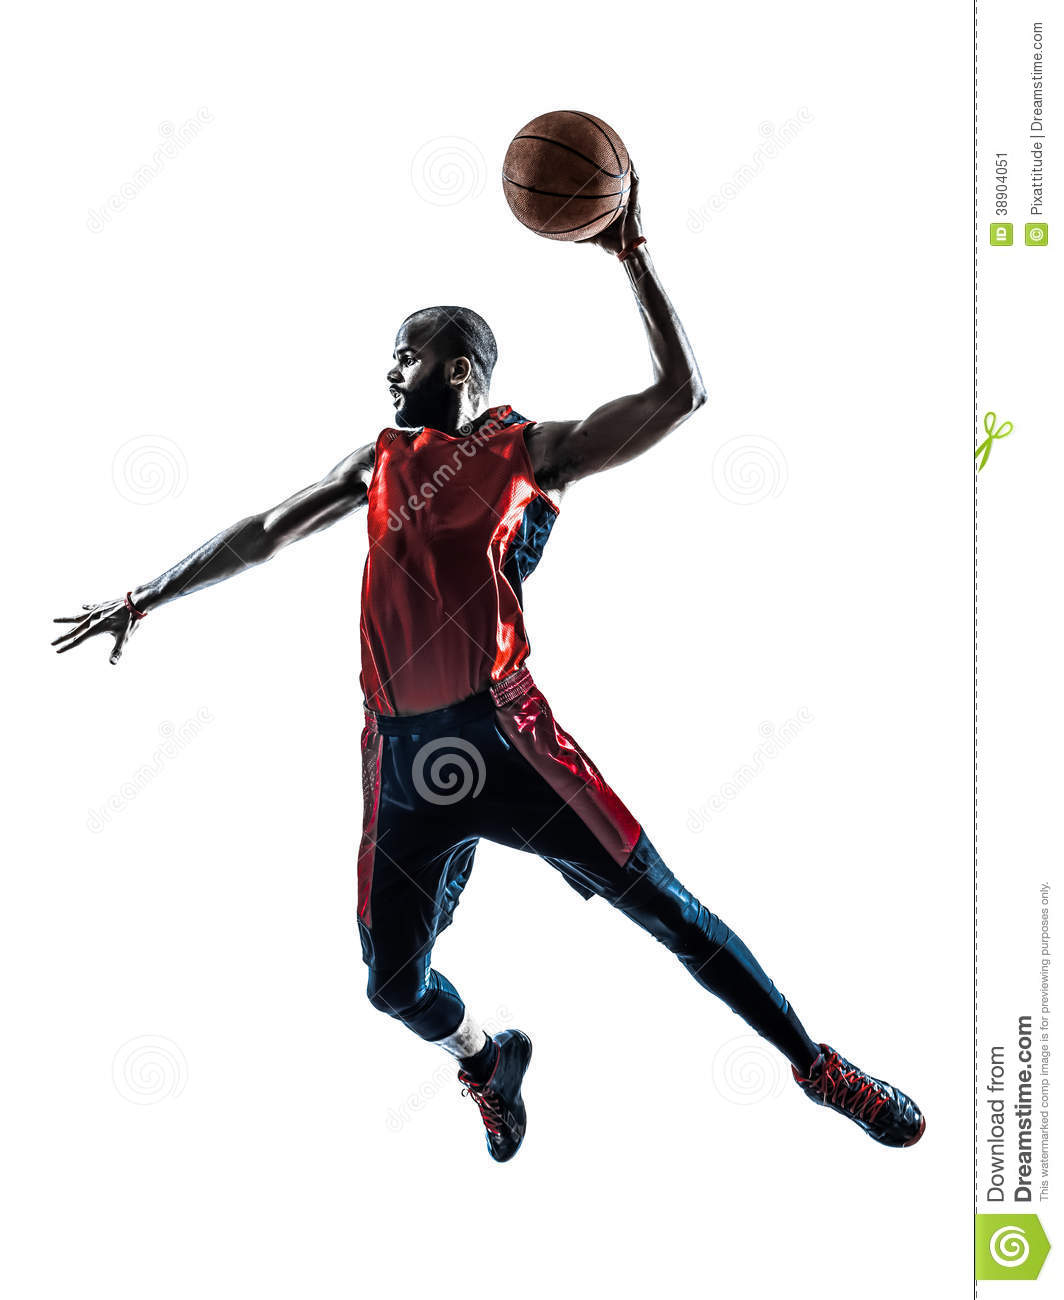 Man Basketball Player Jumping Dunking Silhouette Stock Photo   Image